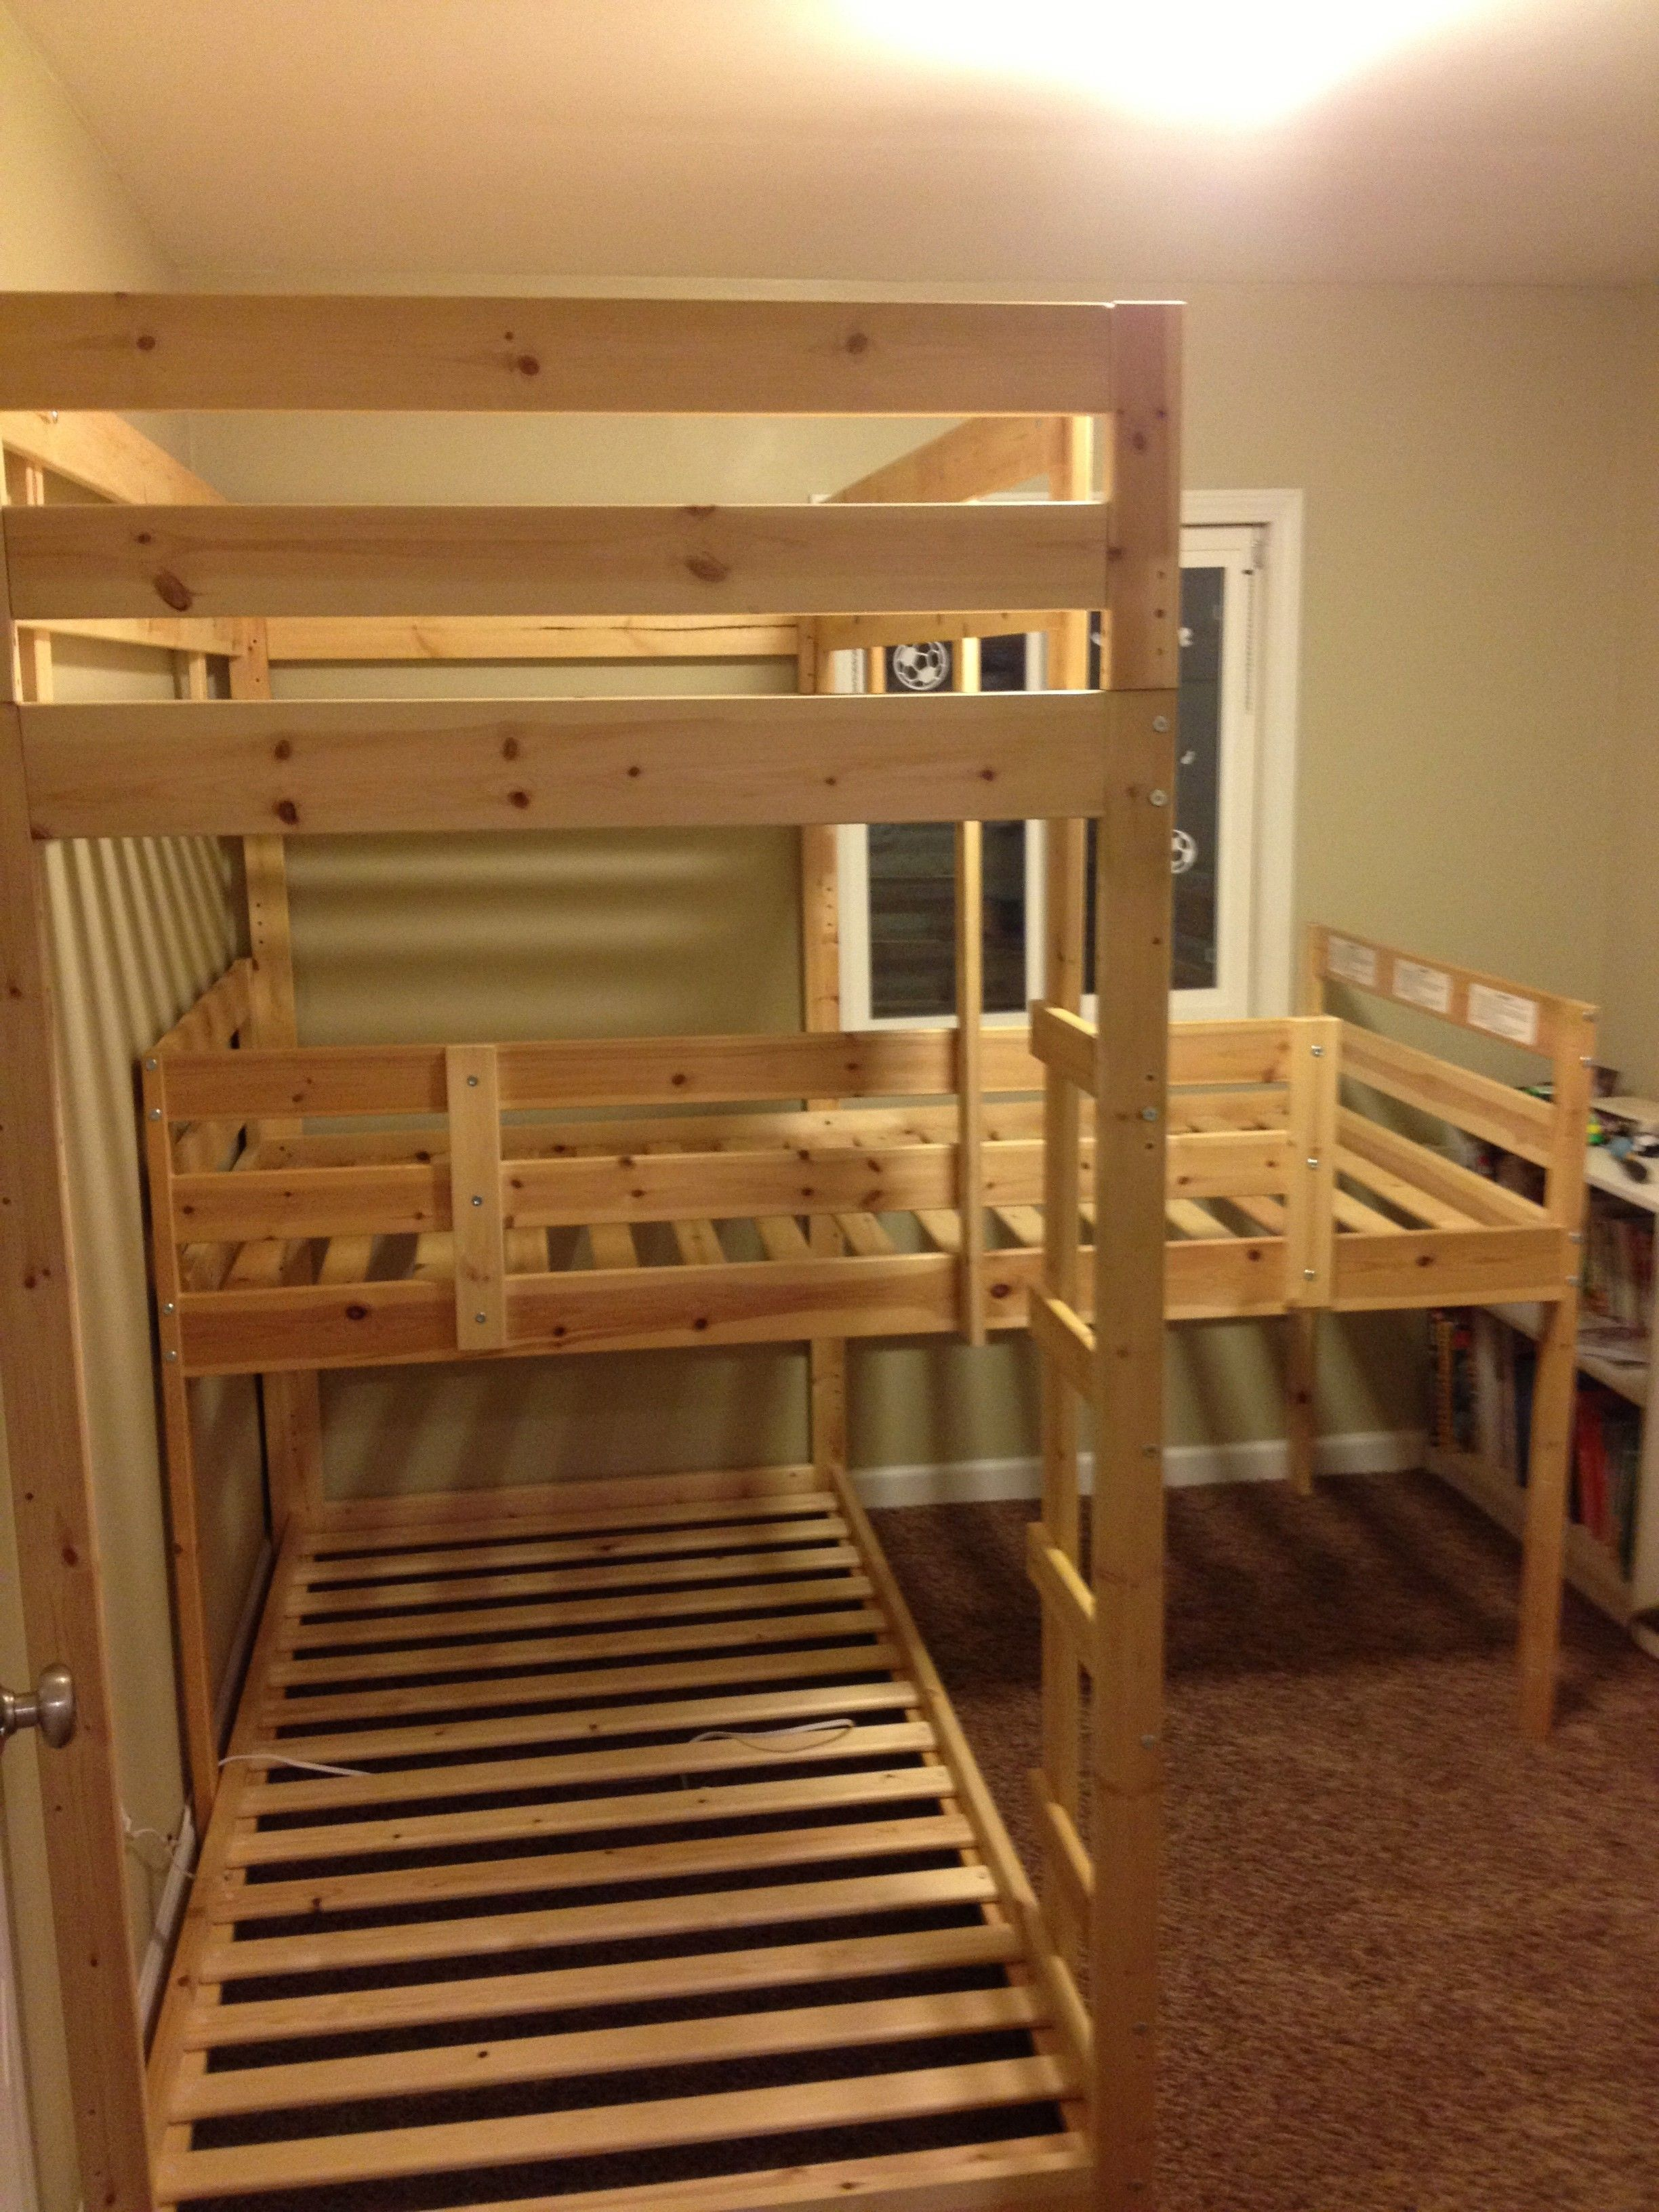 Triple Bunk Beds Ideas for Teens Bunk bed plans, Triple